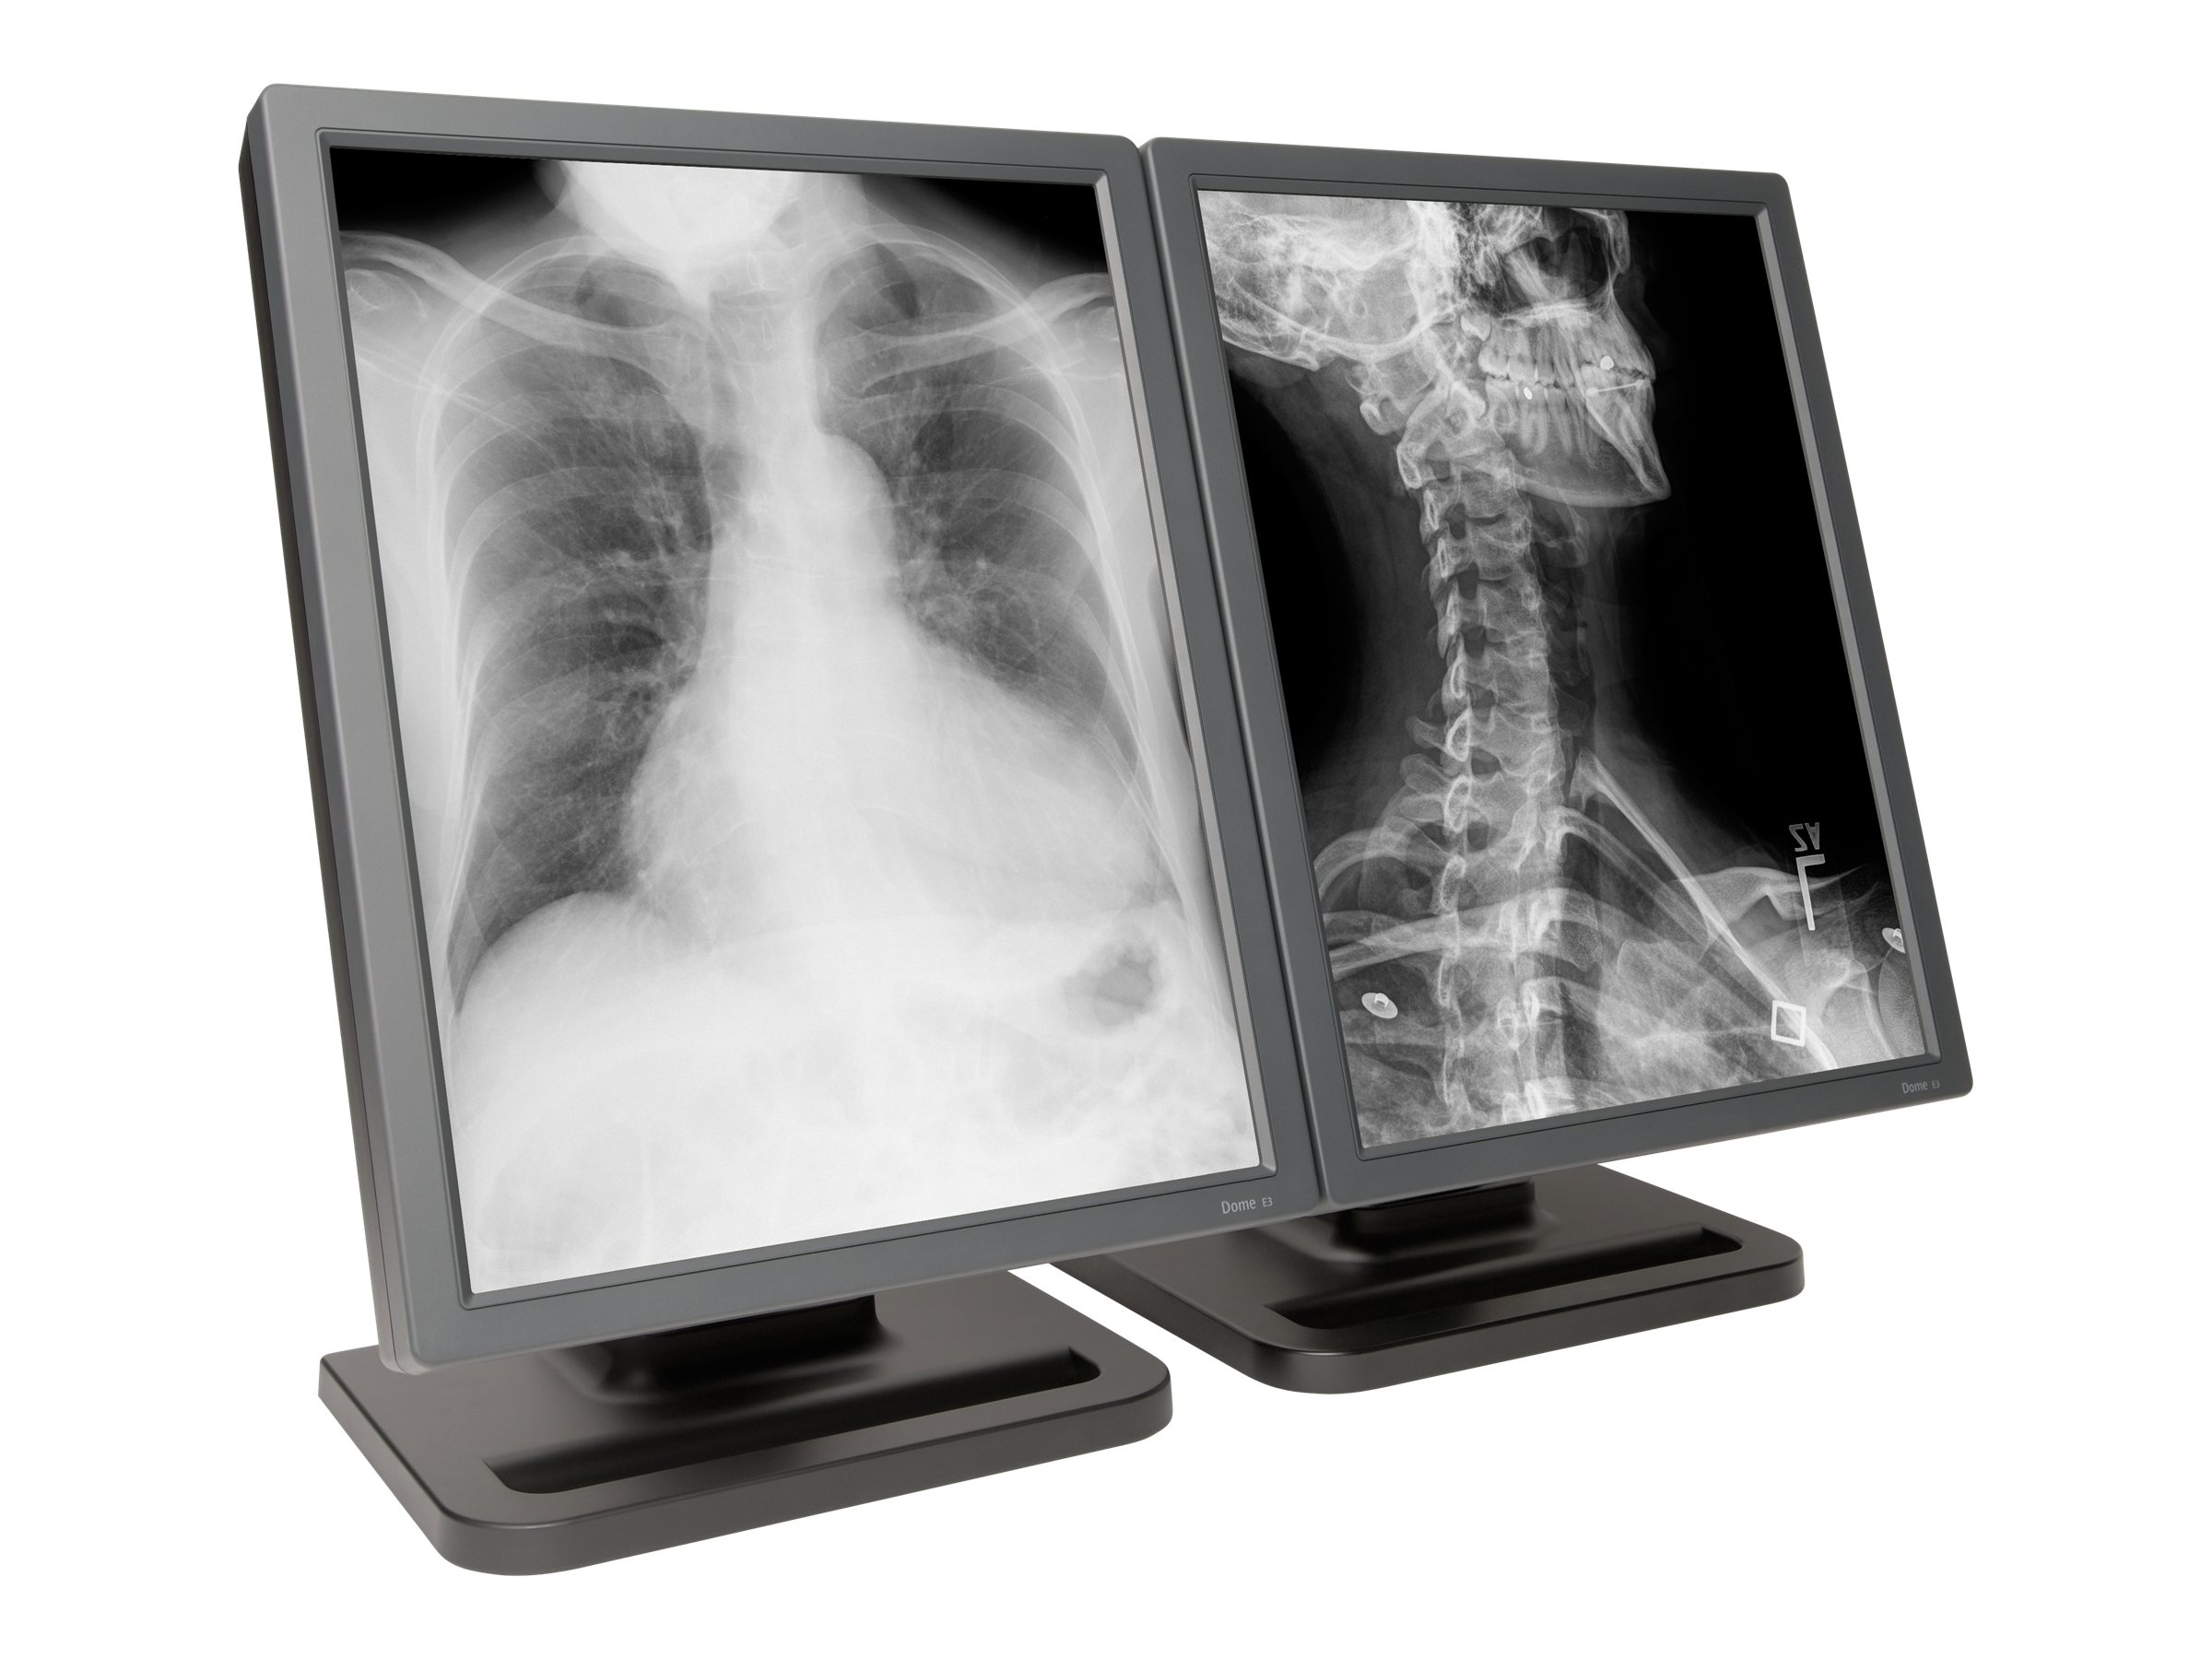 NDS 20.8 E3 3MP Dual-Head Monitor with Quadro K2000D, 997-5713-00-2FN, 16262021, Monitors - Medical